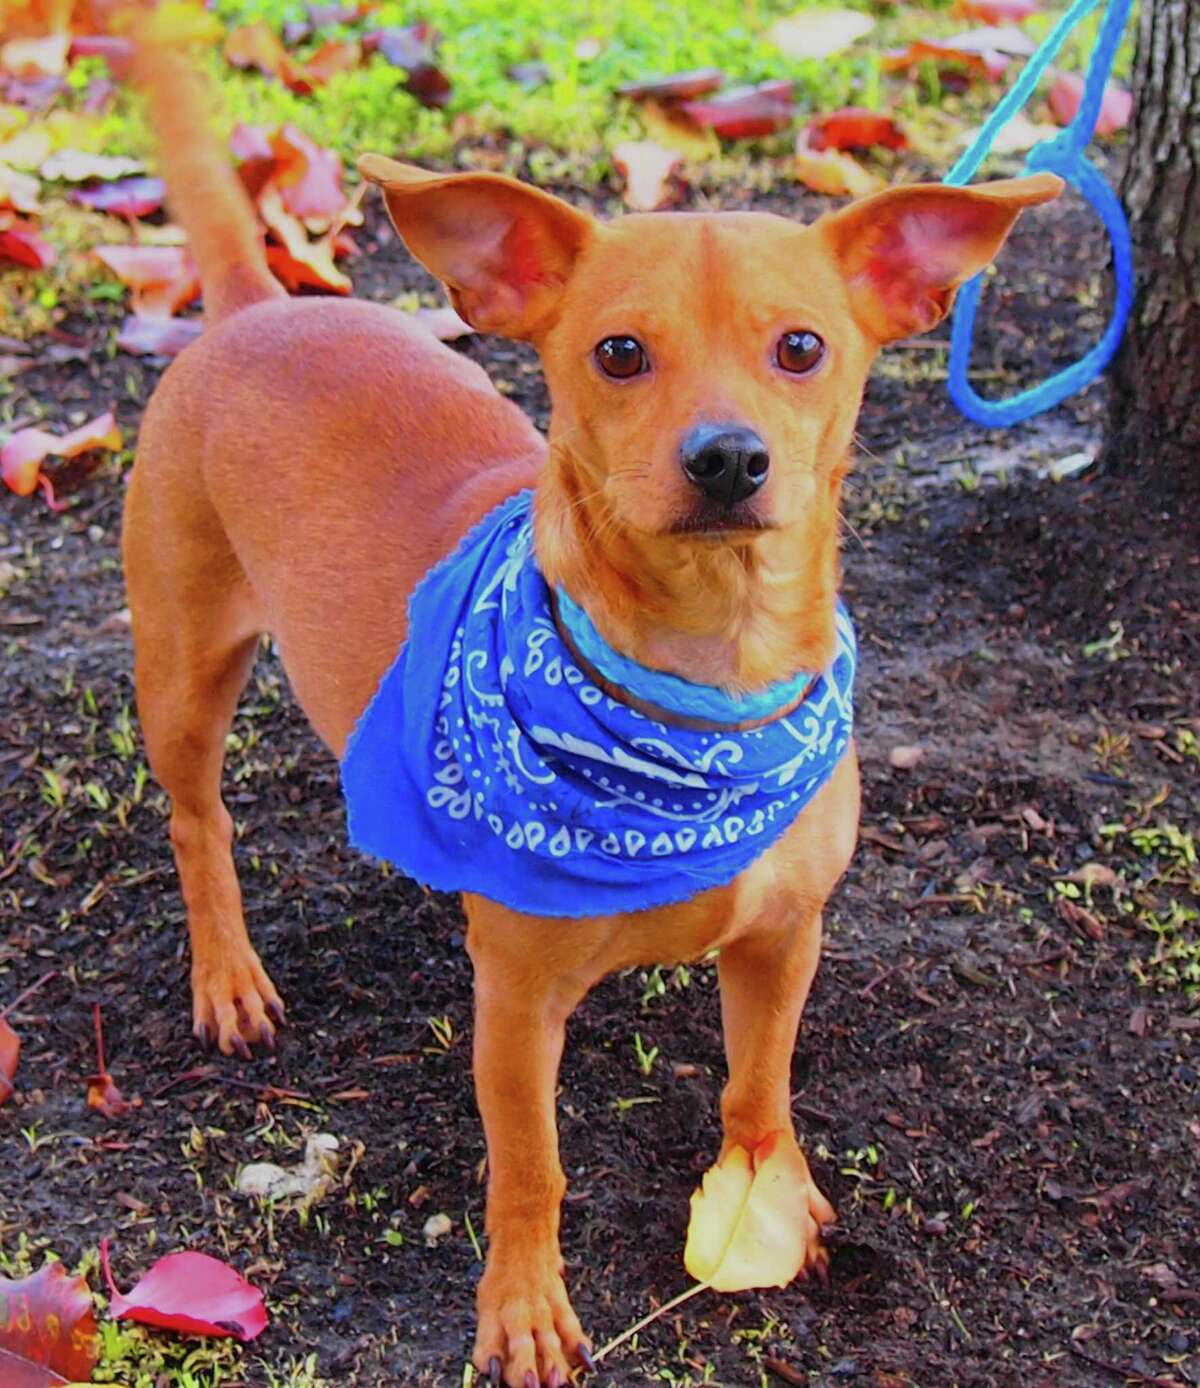 Chase will be available for adoption at 11 a.m. Friday at Citizens for Animal Protection, 17555 Interstate 10 W. More information: cap4pets.org or 281-497-0591.